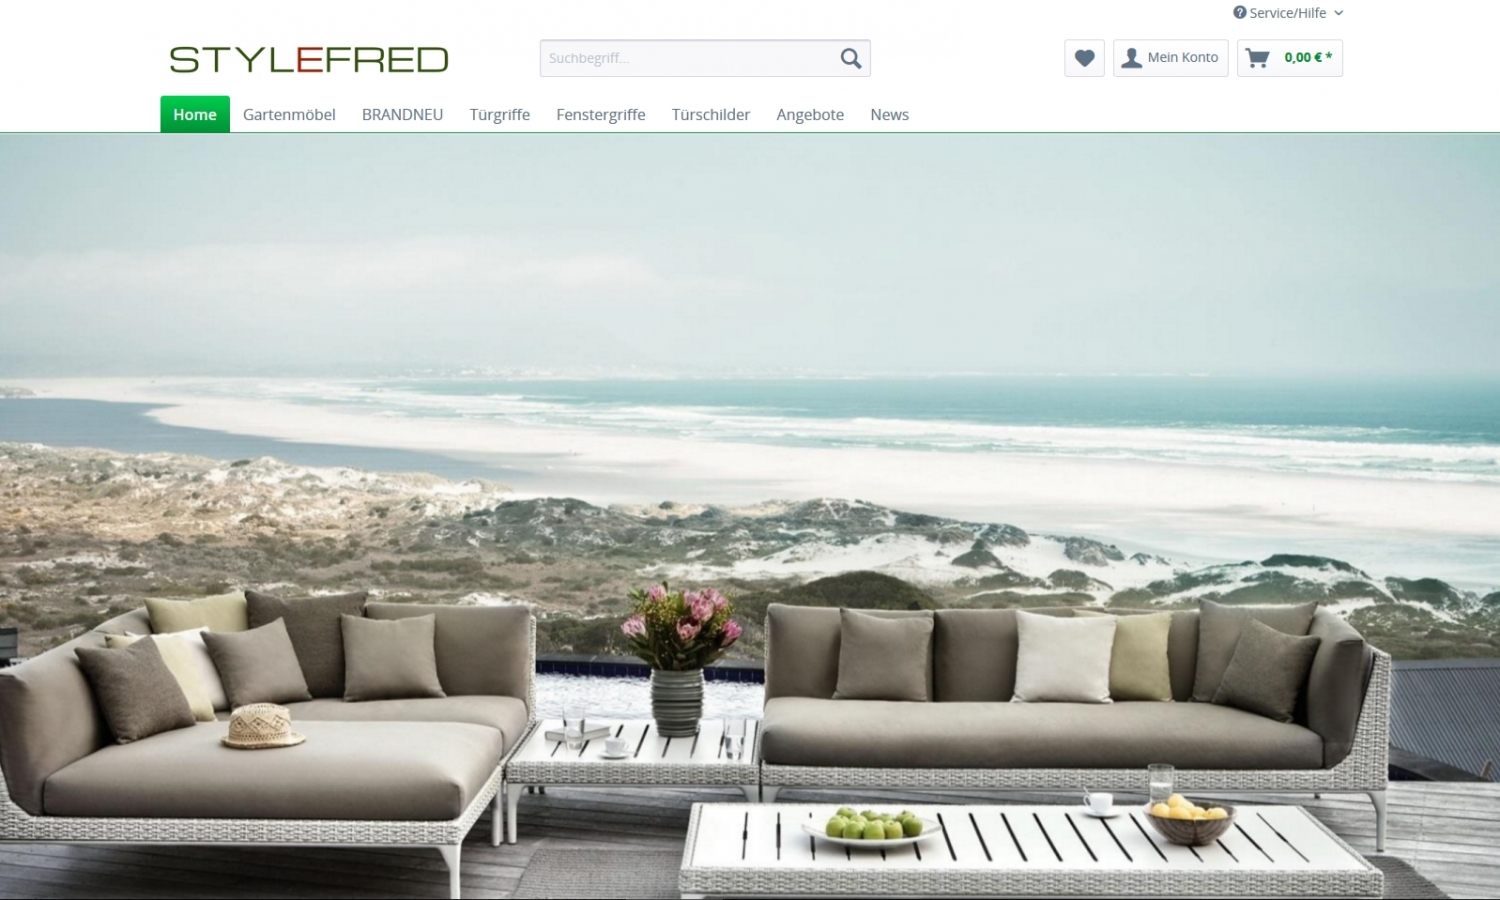 StyleFred.com